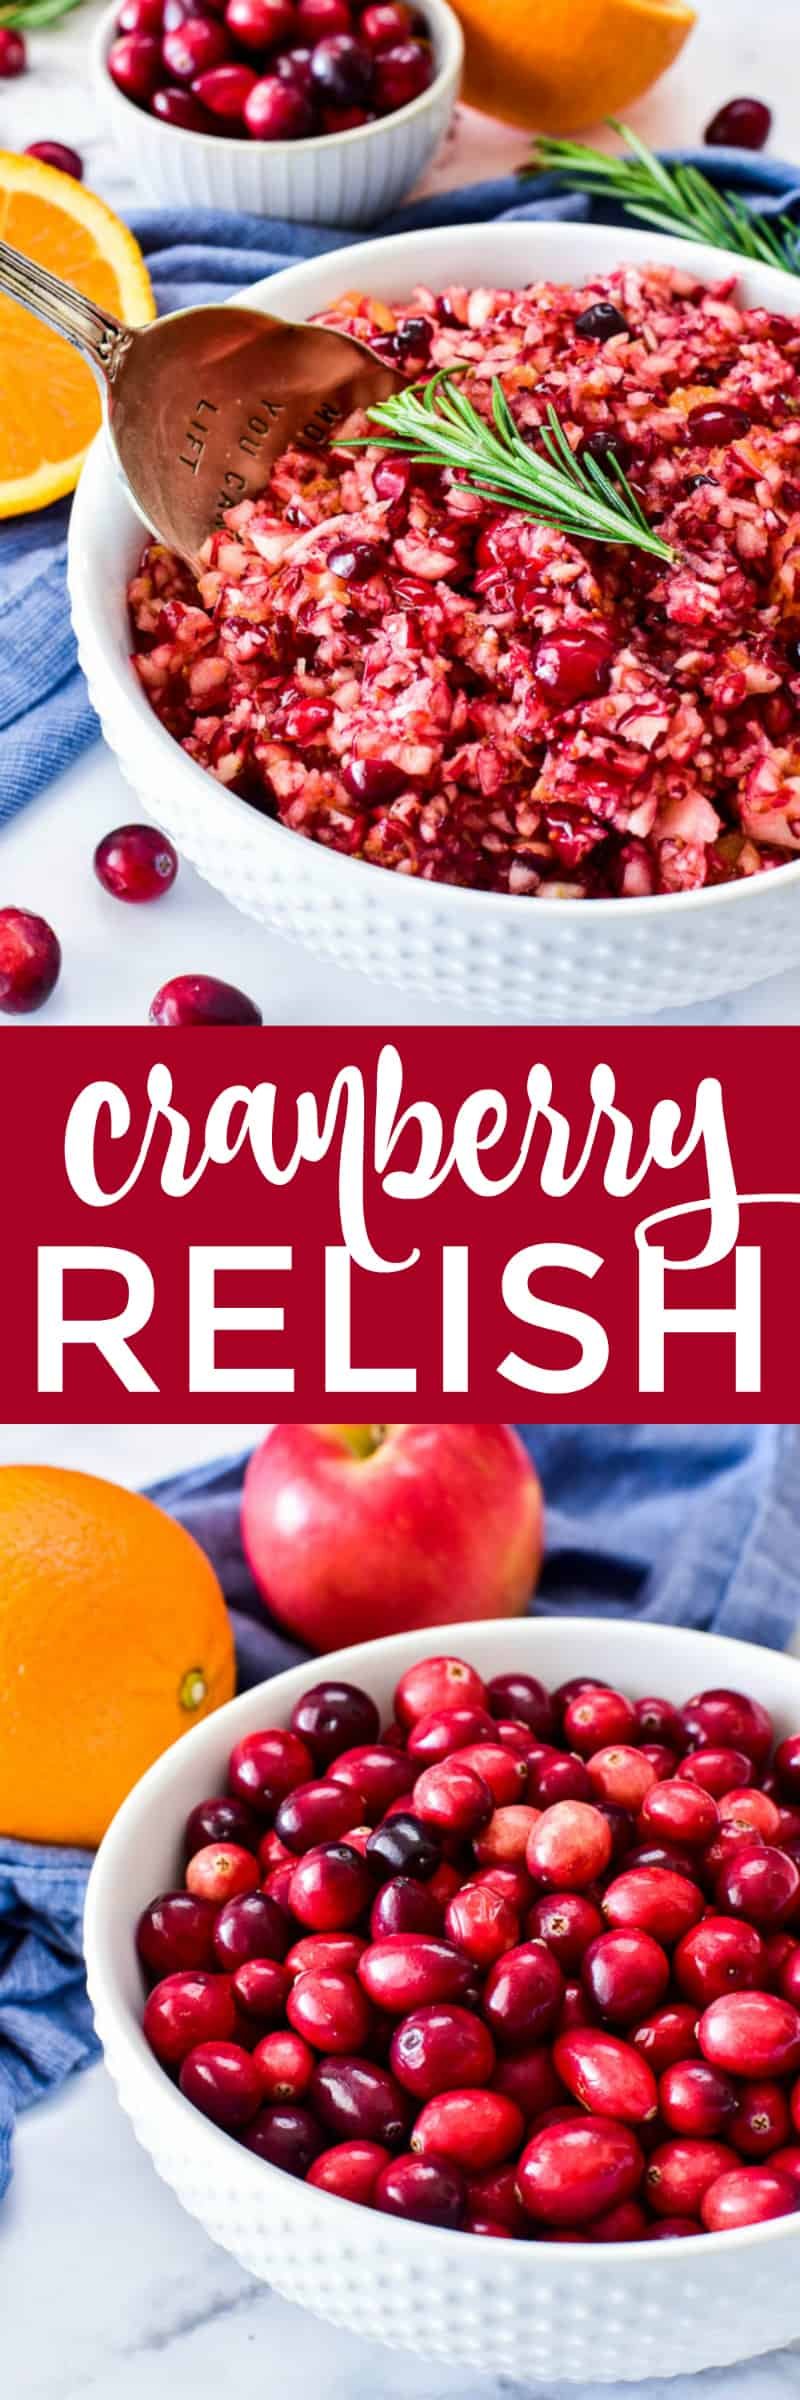 Collage image of cranberry relish